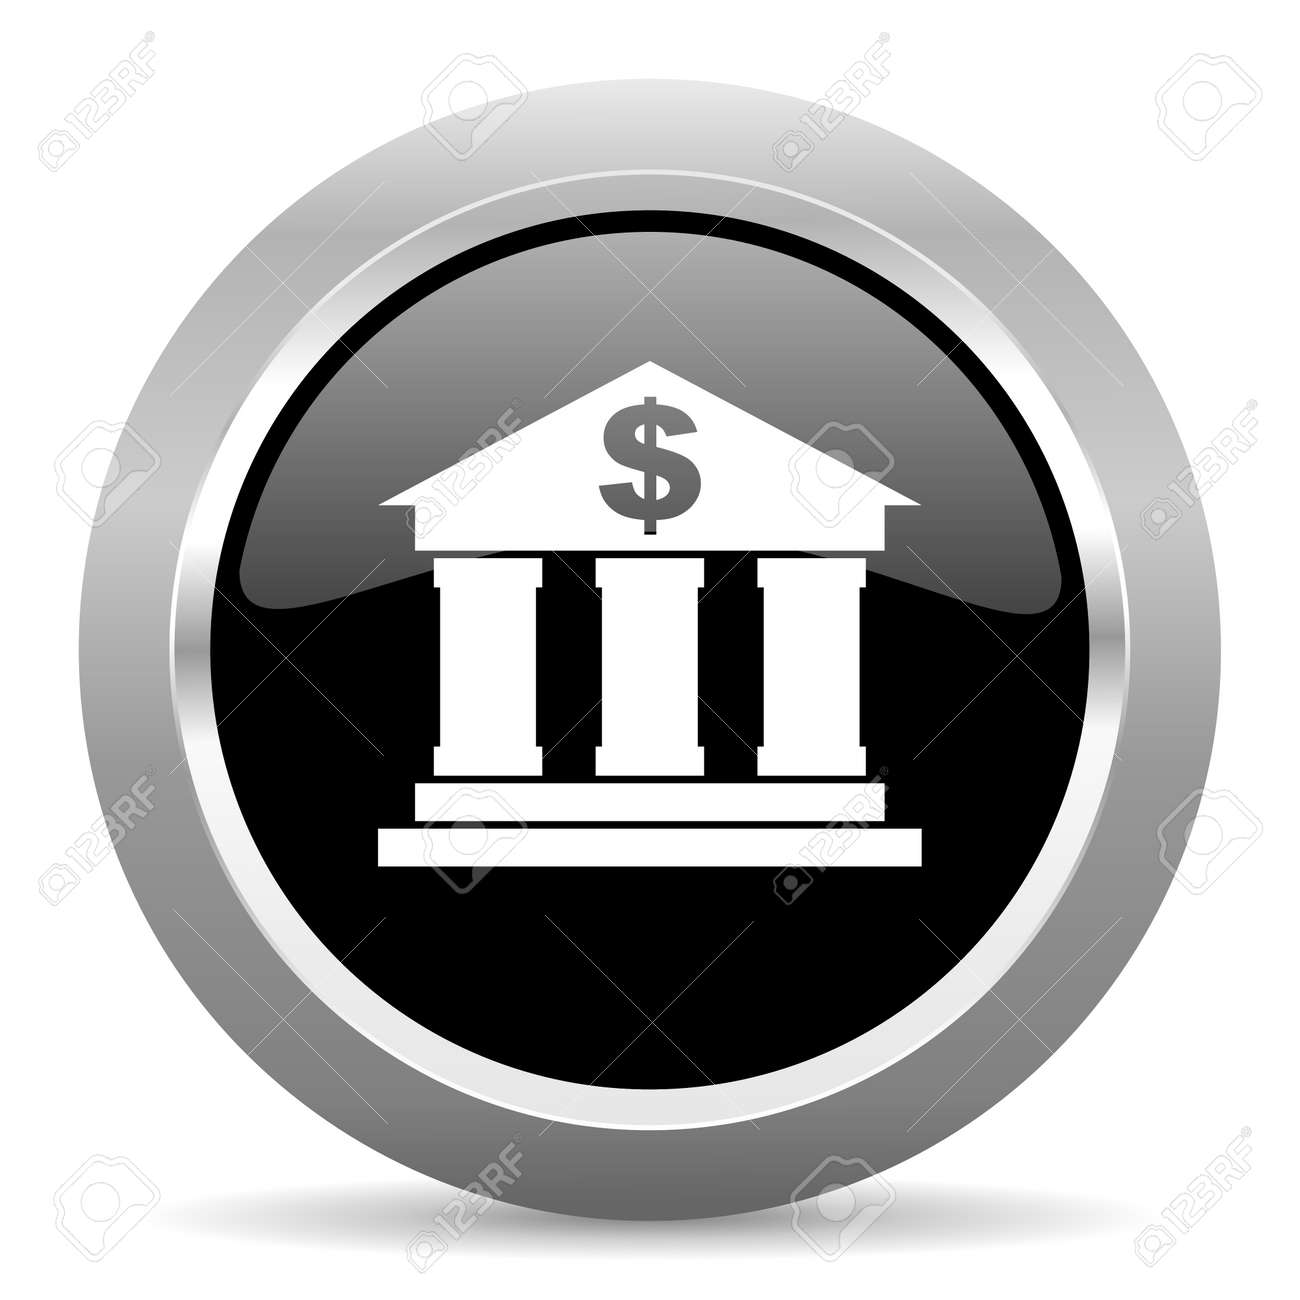 Bank Schwarz Stock Photo